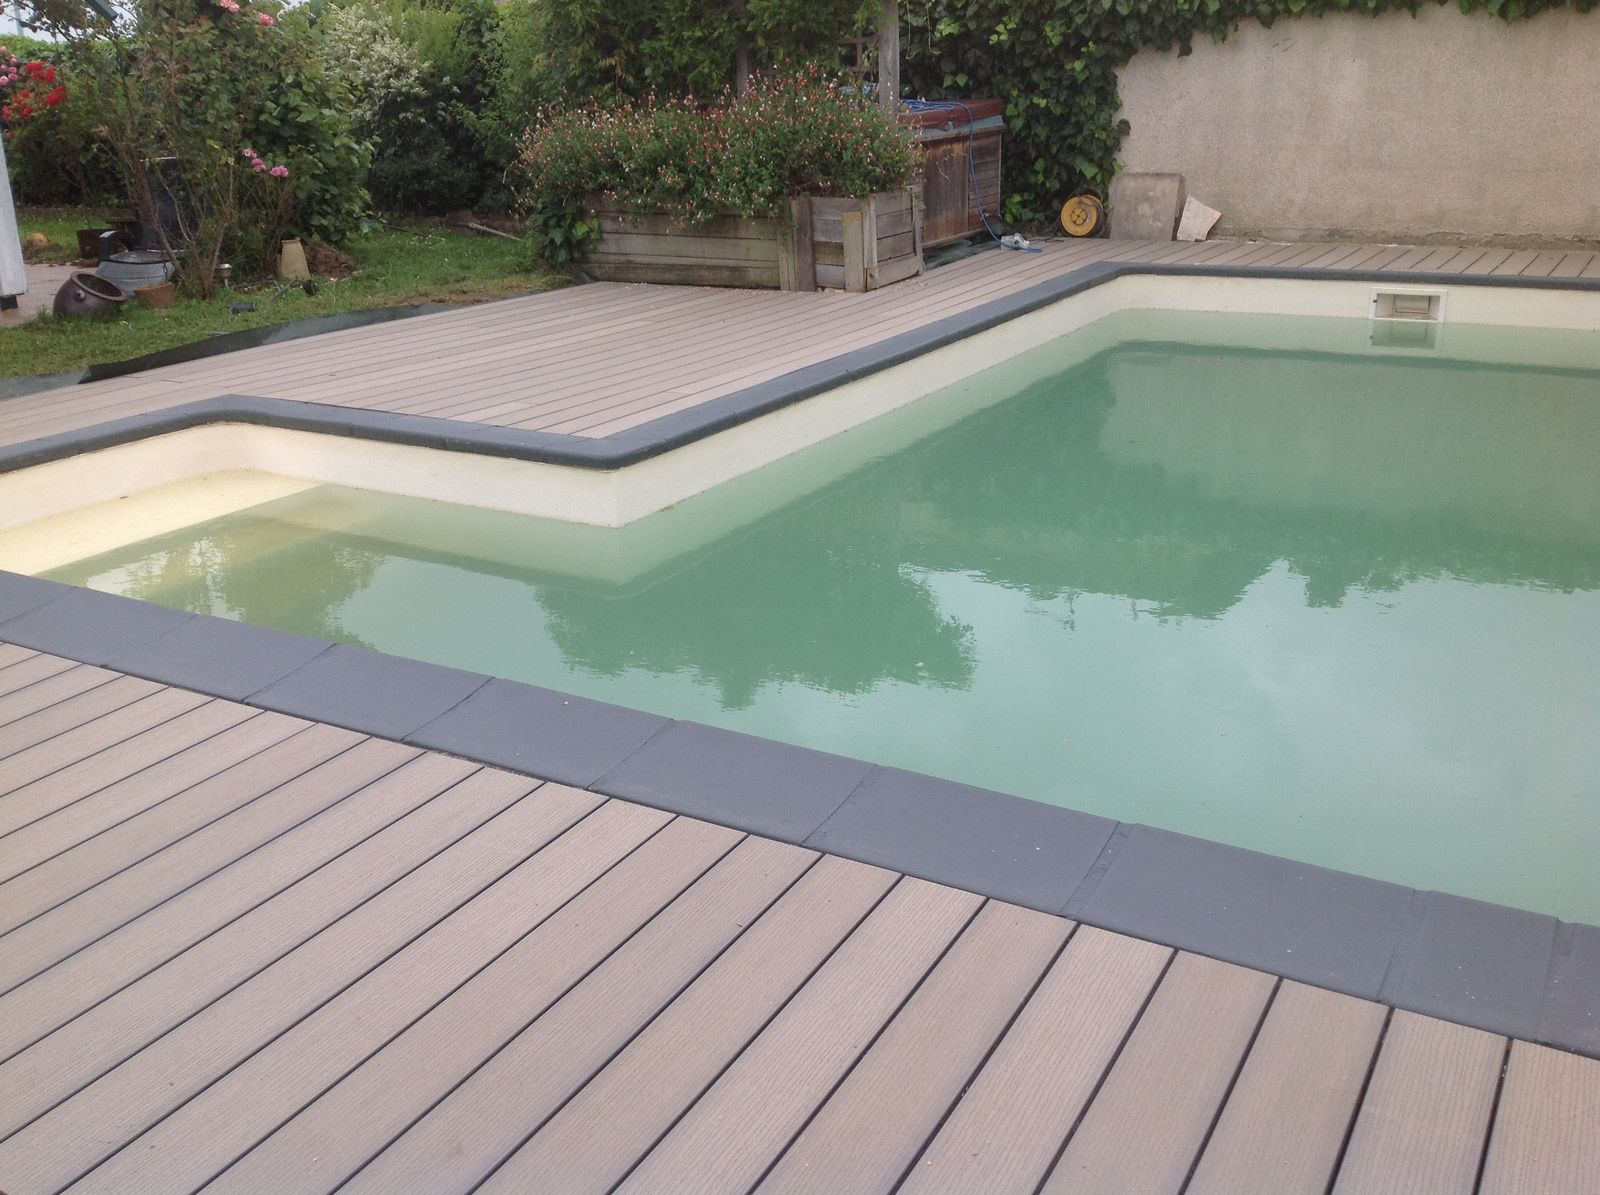 Terrasses composites quelques creations 2016 le blog for Peinture piscine beton